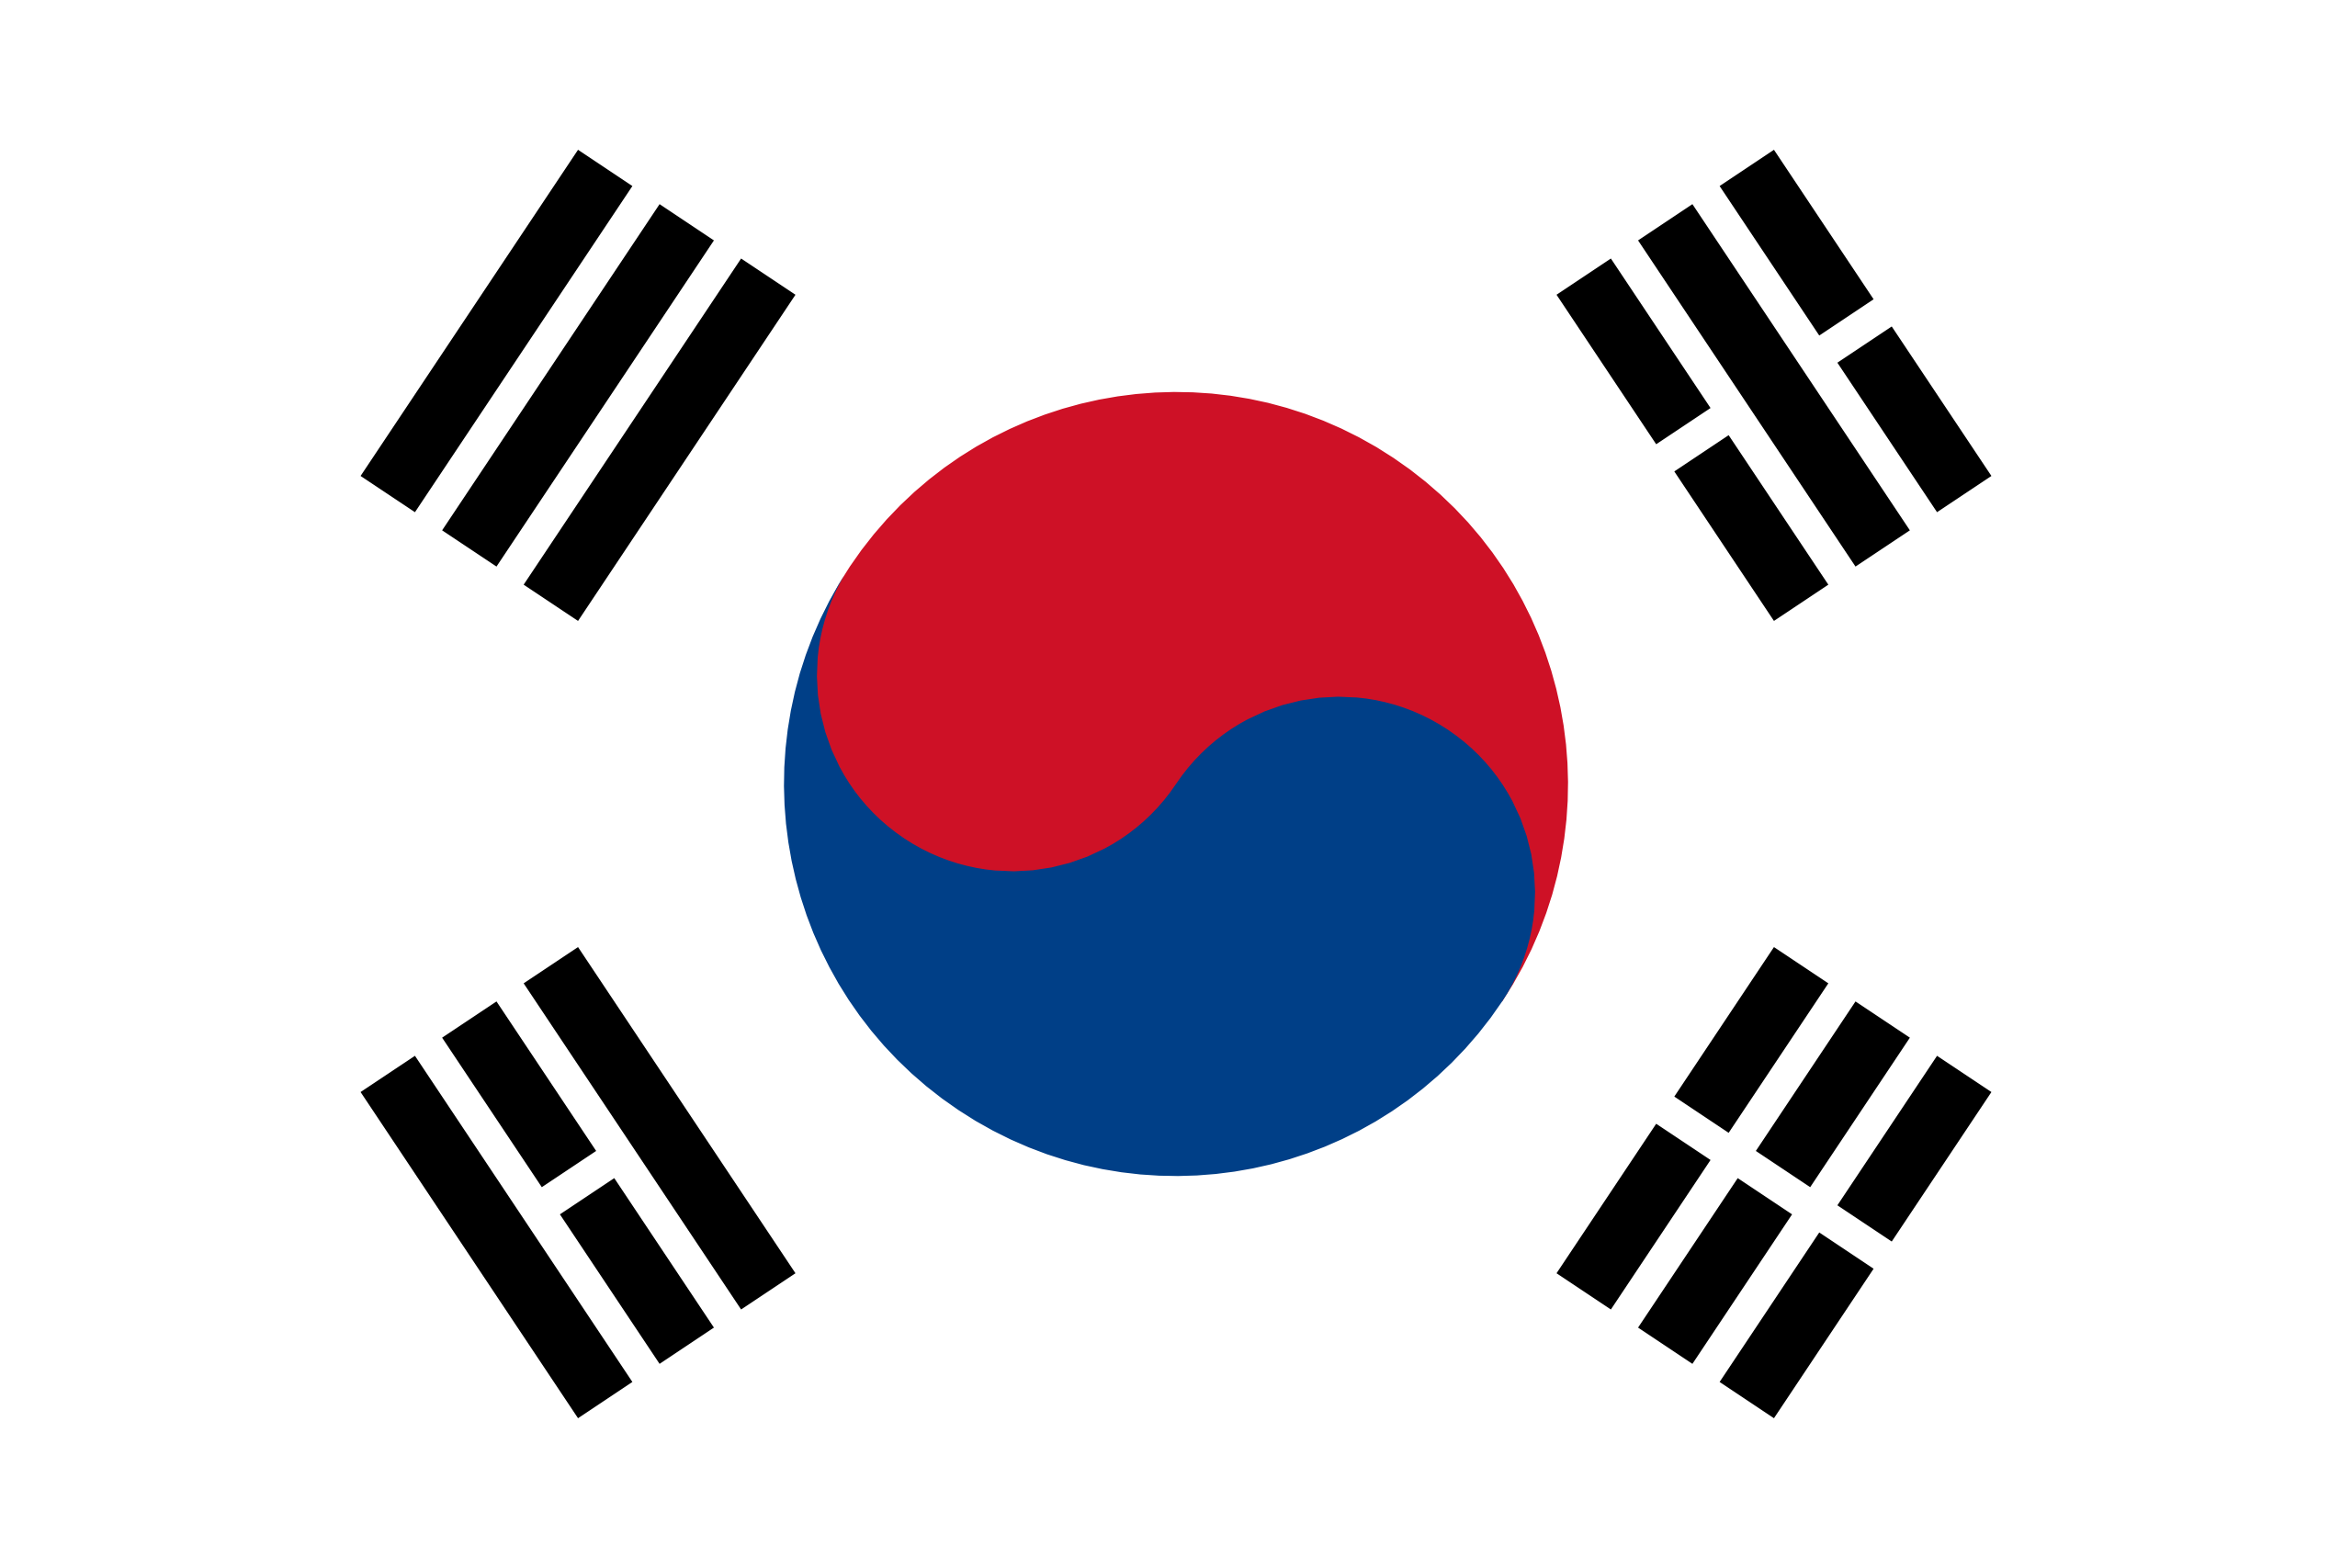 https://aerospaceexport.com/wp-content/uploads/2019/10/south-korea.png